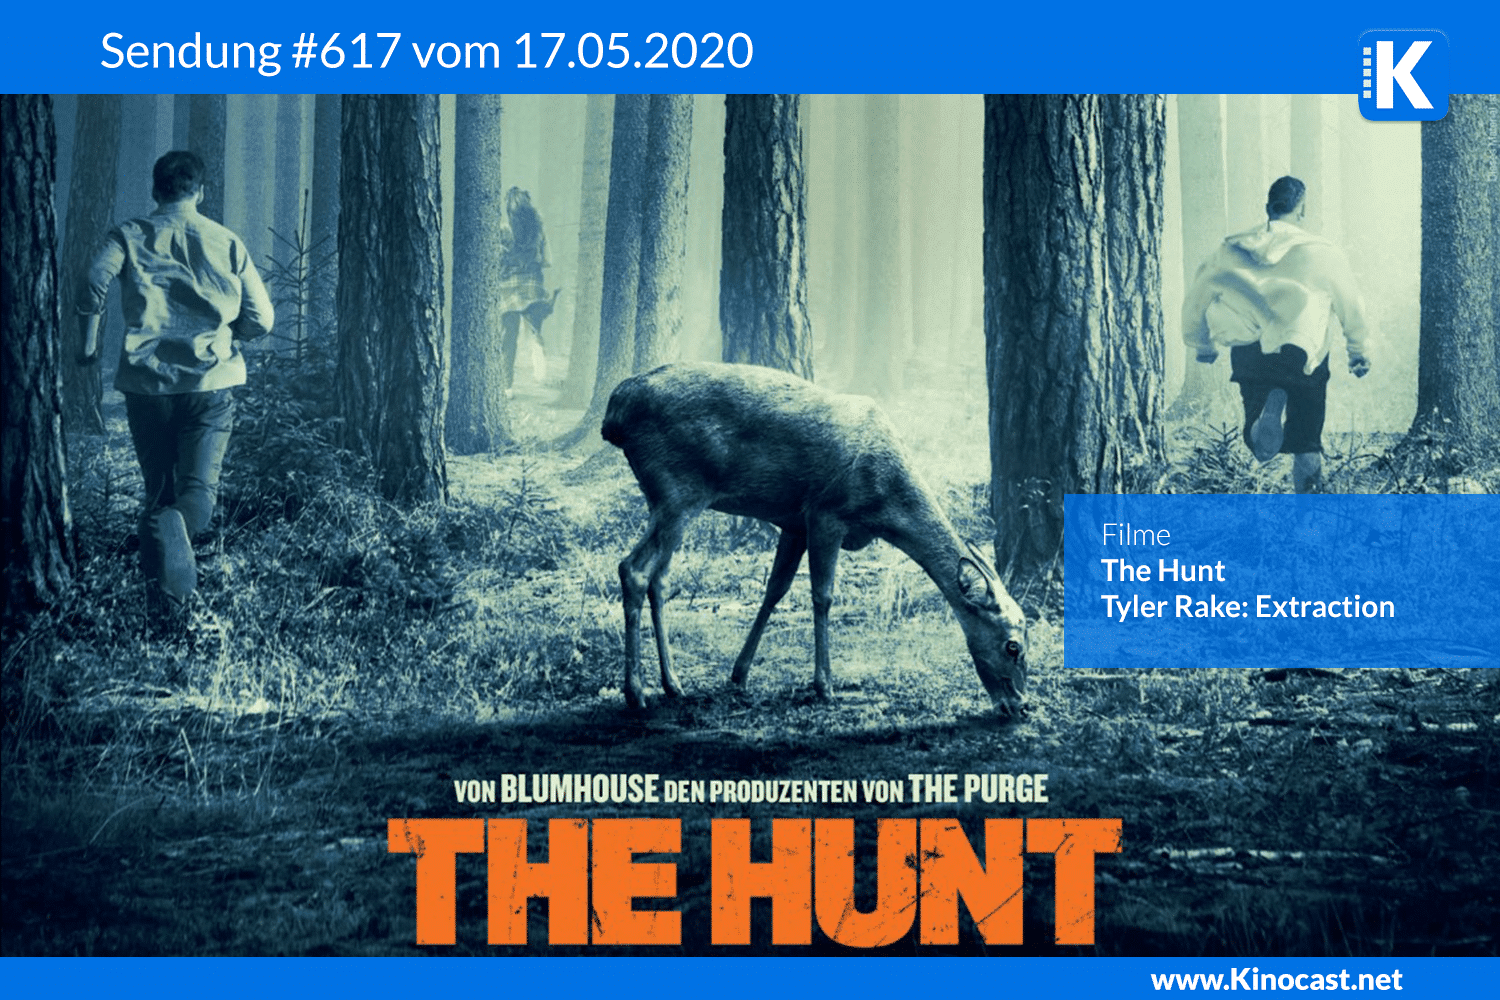 The Hunt Tyler Rake Extraction Download film german deutsch Podcast